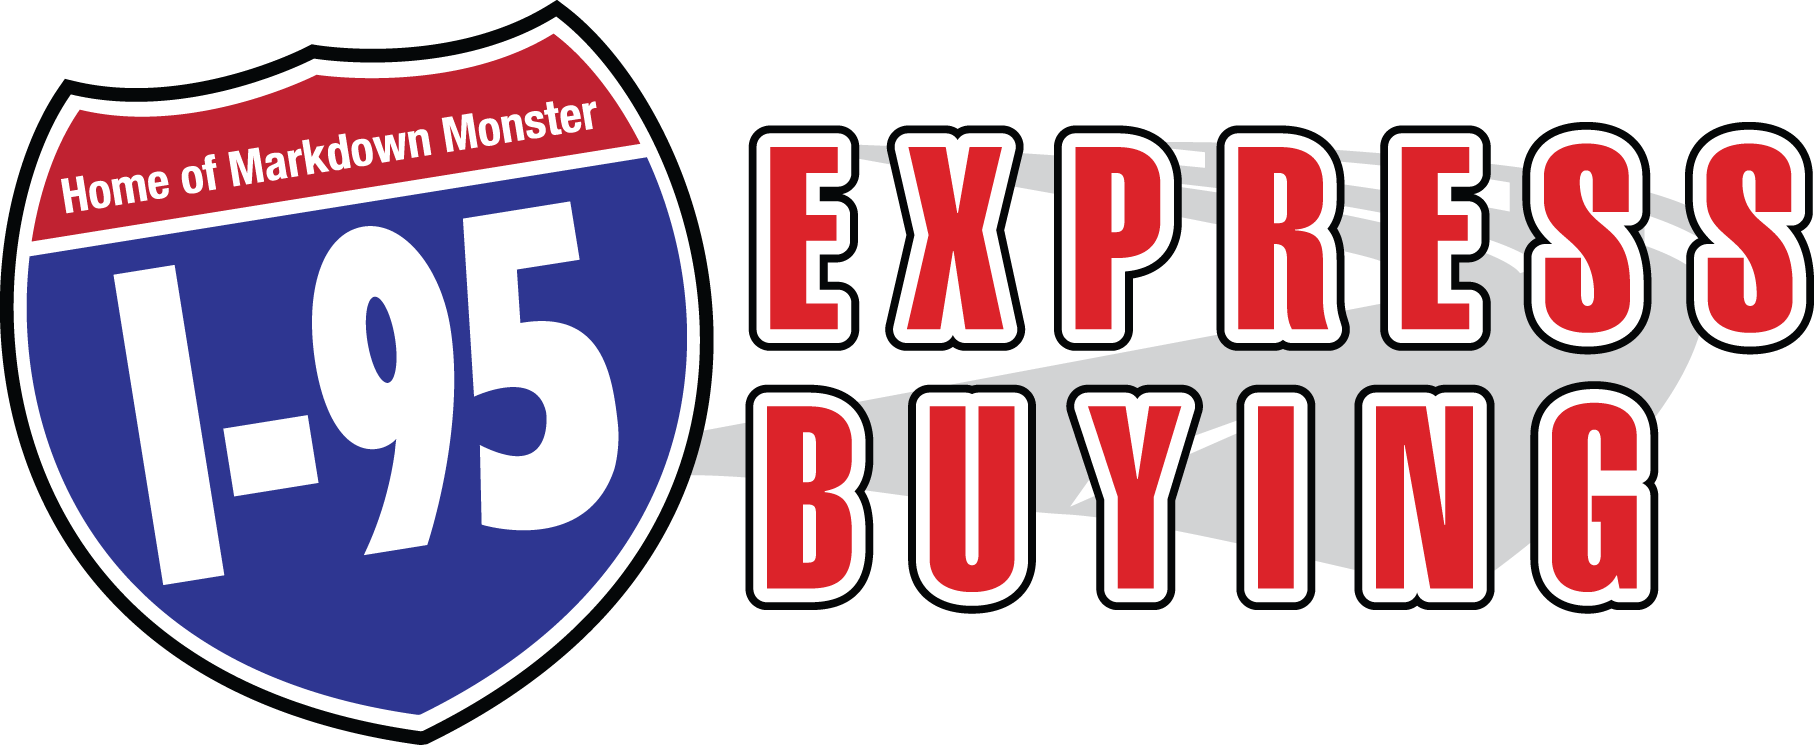 I-95 Express Buying